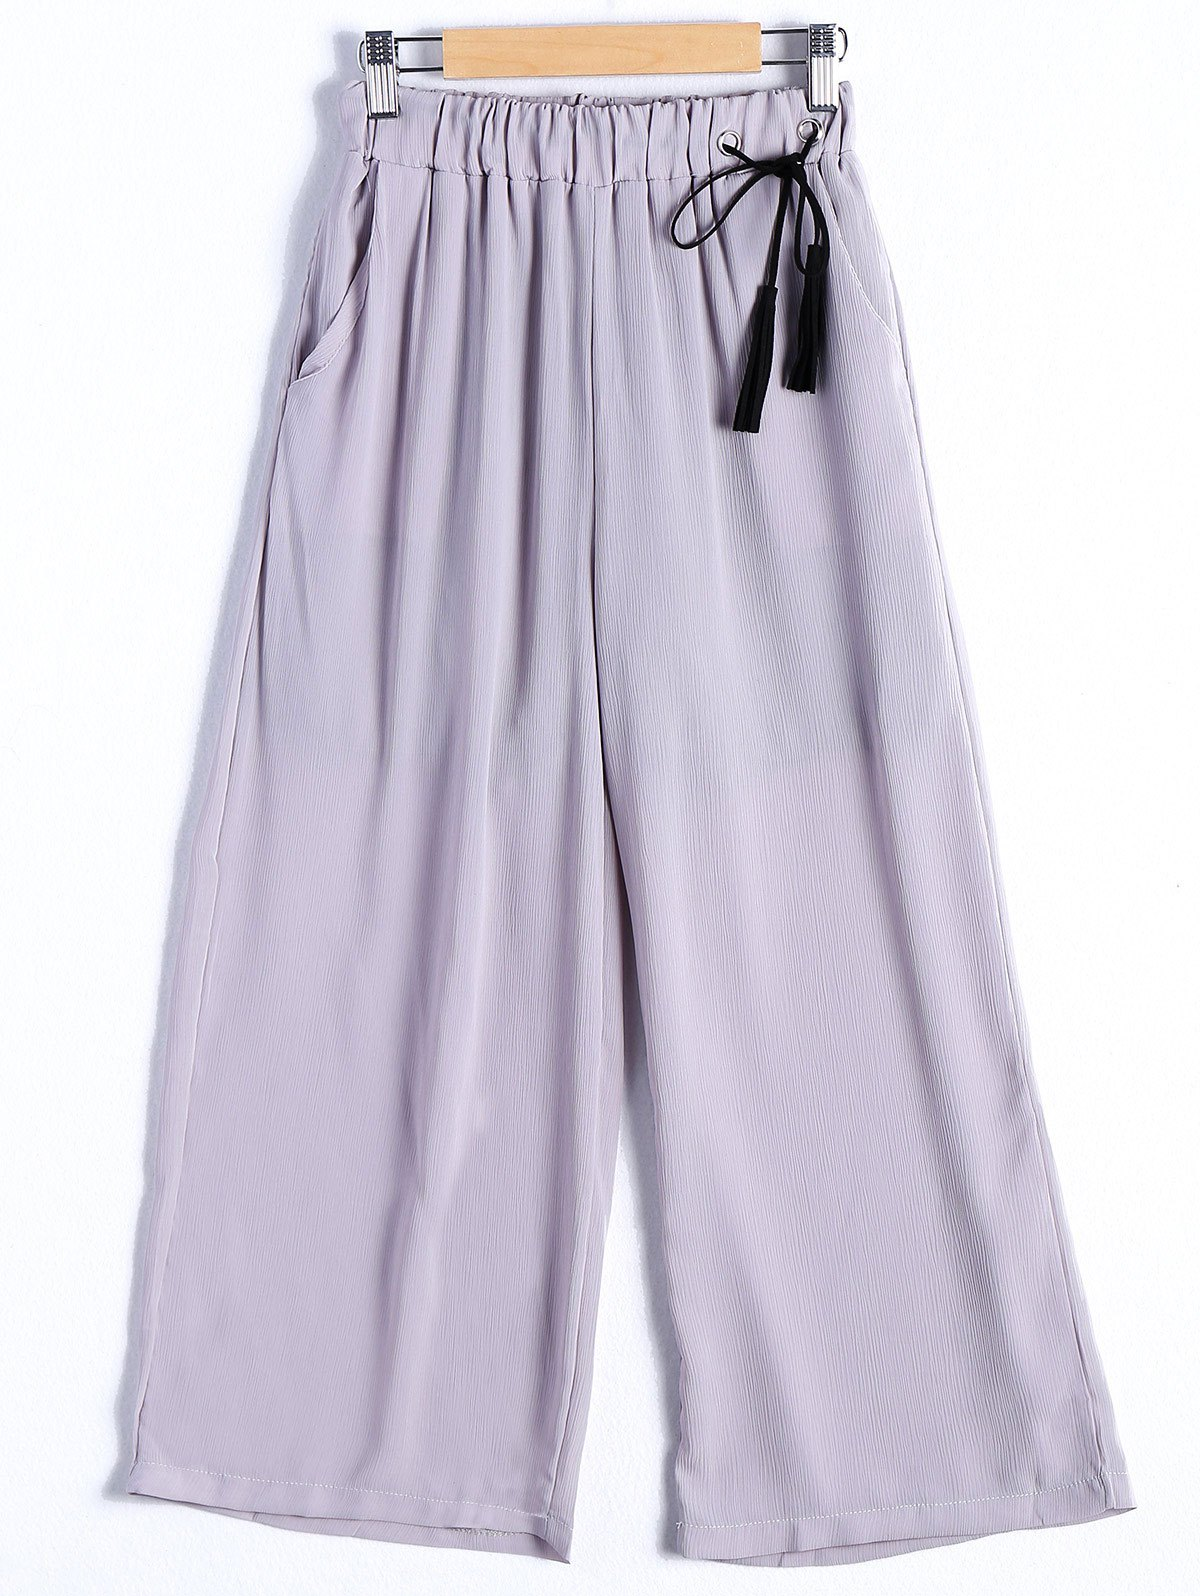 Casual Women's Chiffon Tie Waist Wide Leg Pants - ONE SIZE(FIT SIZE XS TO M) LIGHT GRAY